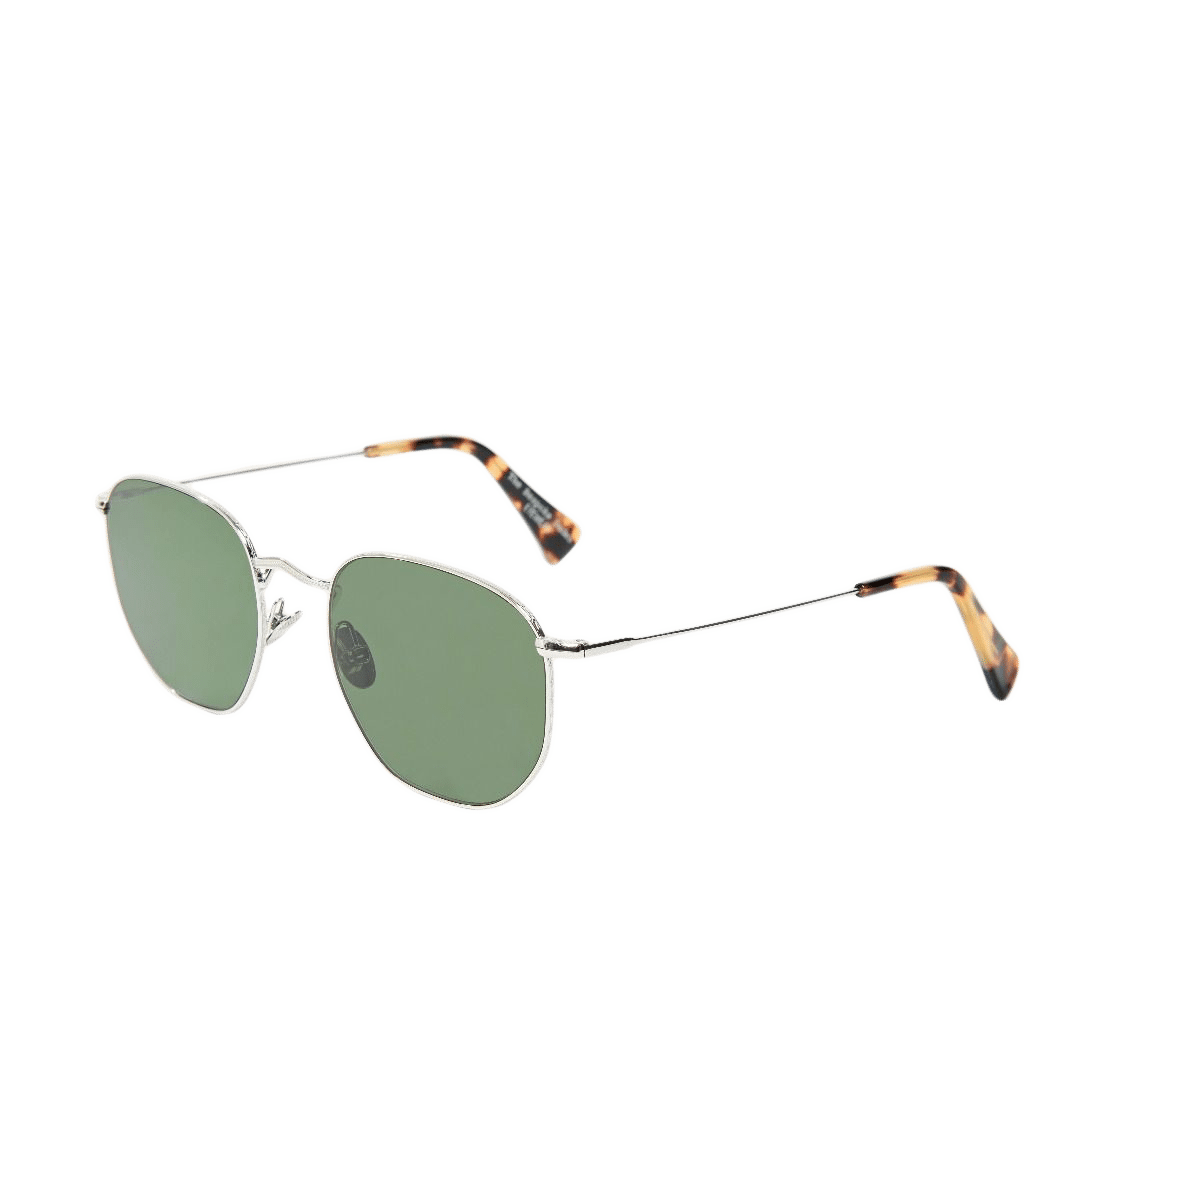 The Bespoke Dudes Mohair Rhodium with Bottle Green Lenses Feature